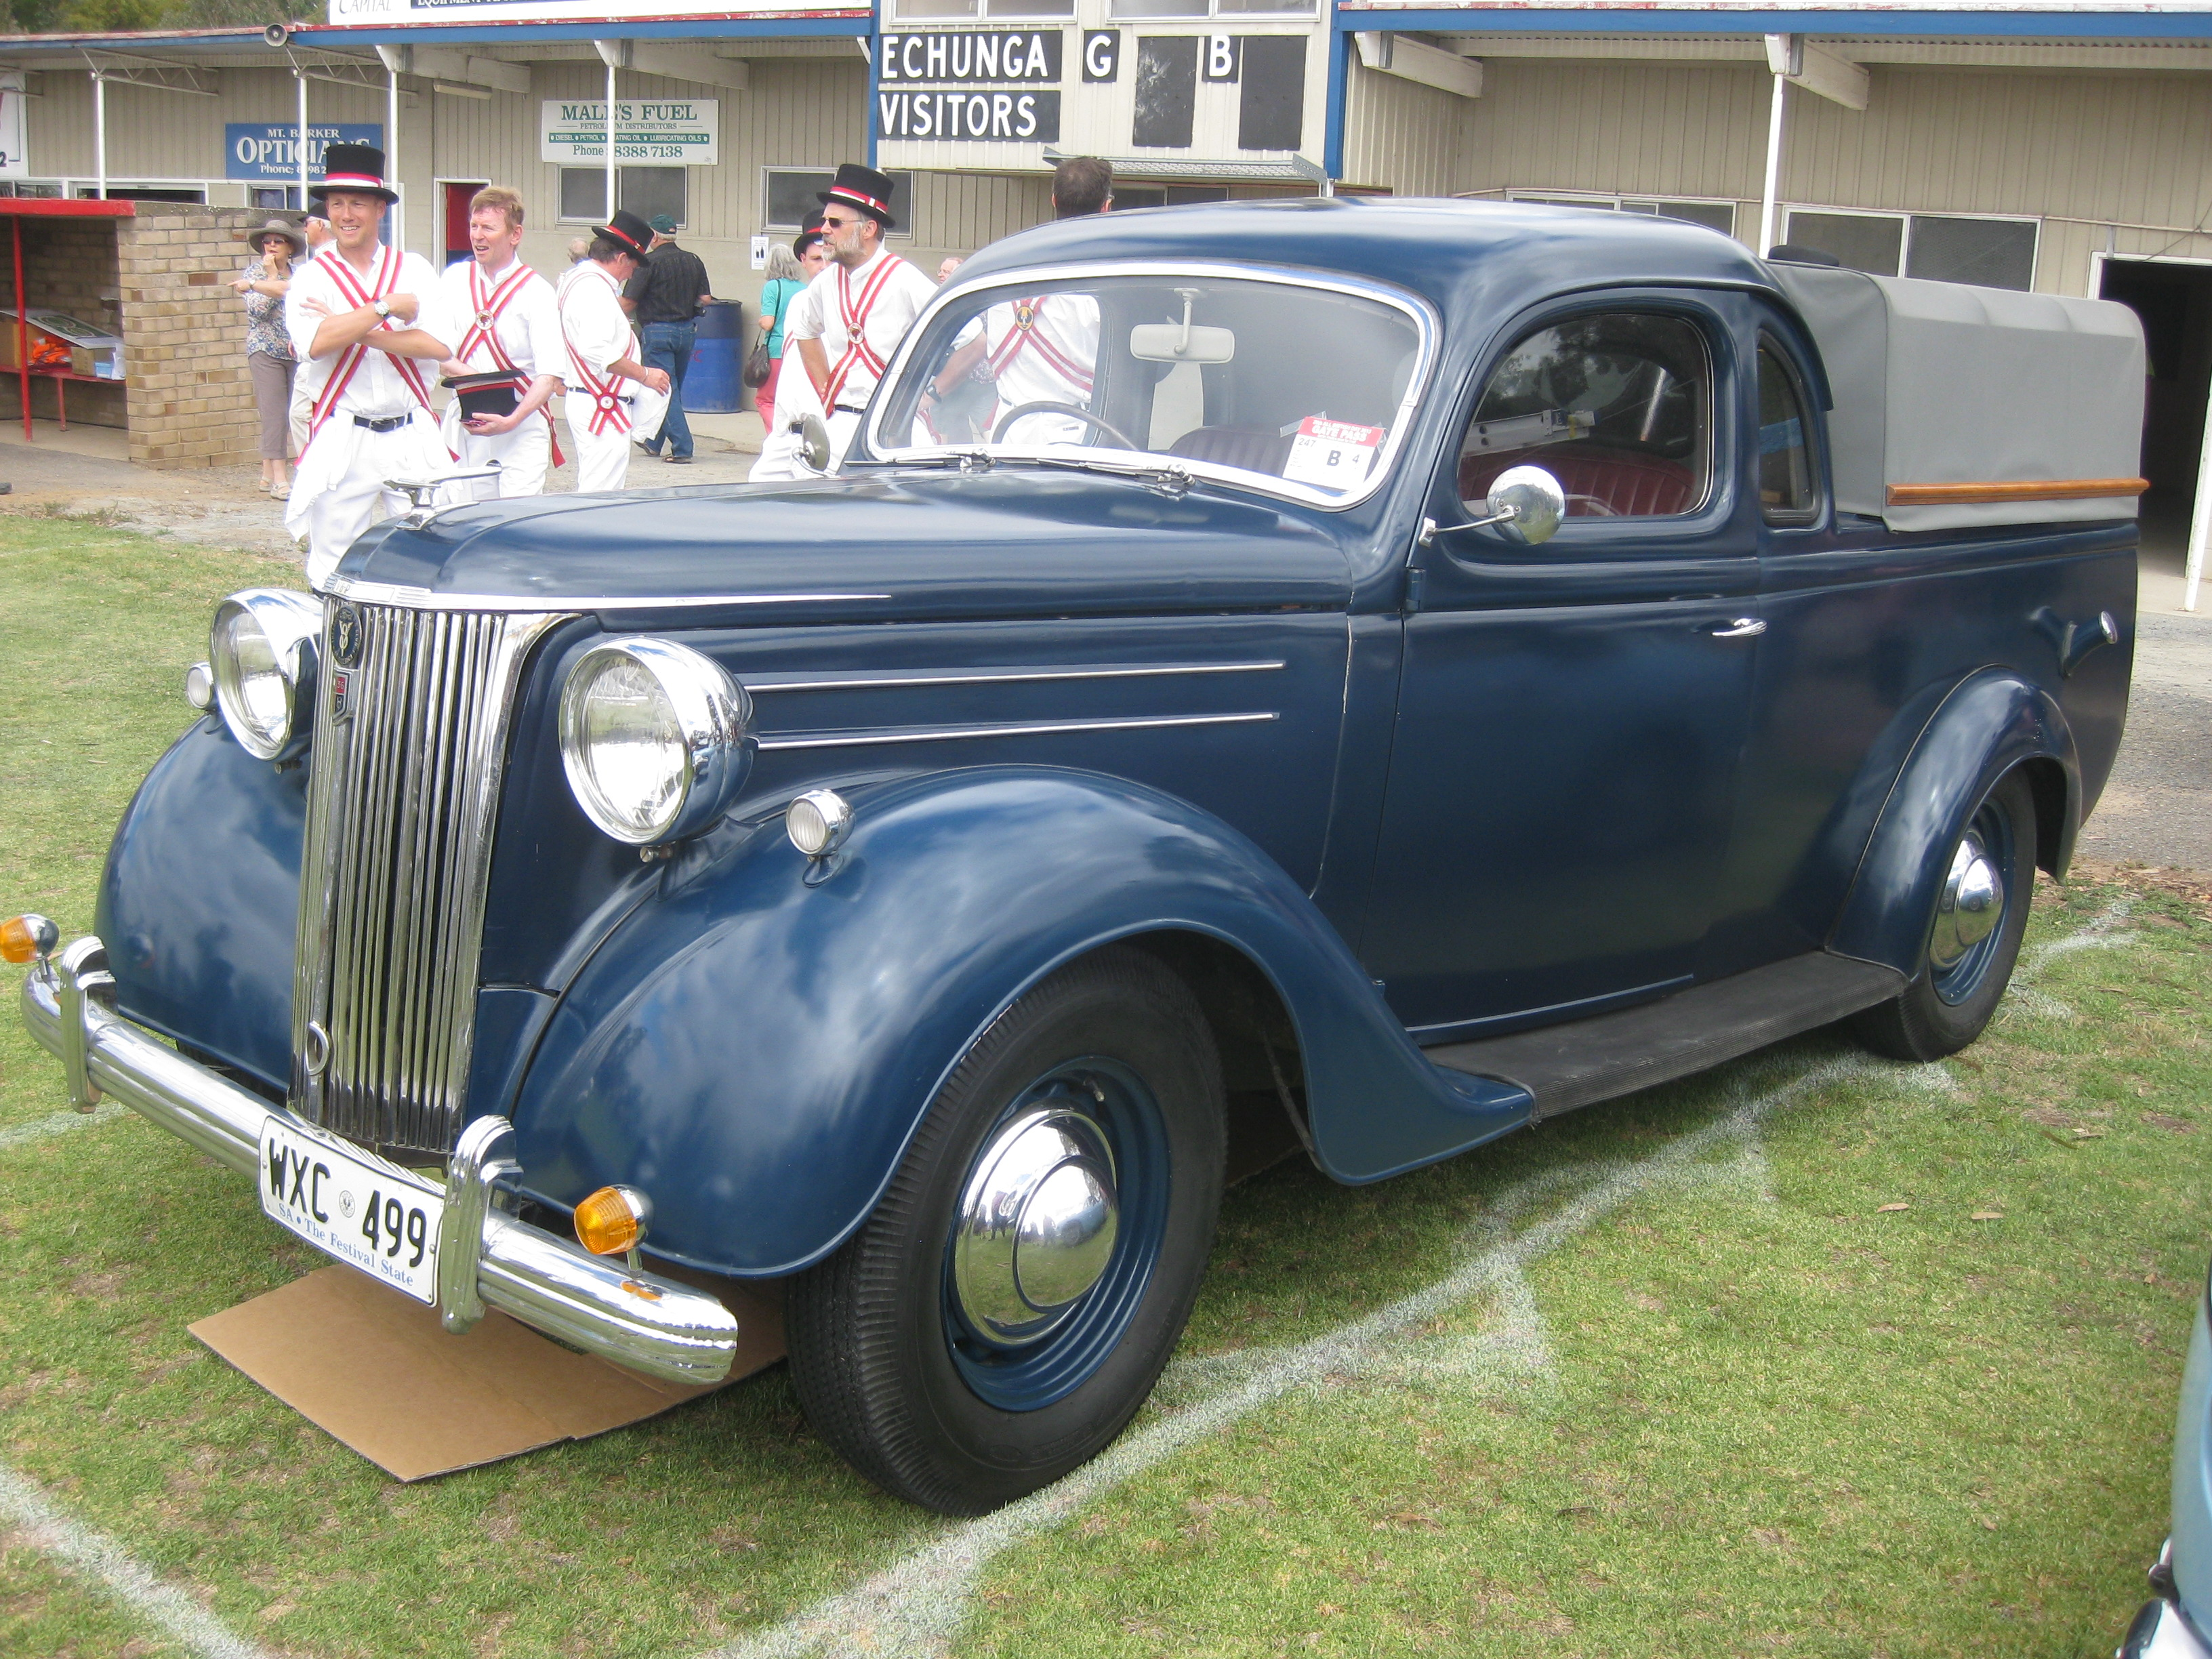 1947 Ford Pilot #1